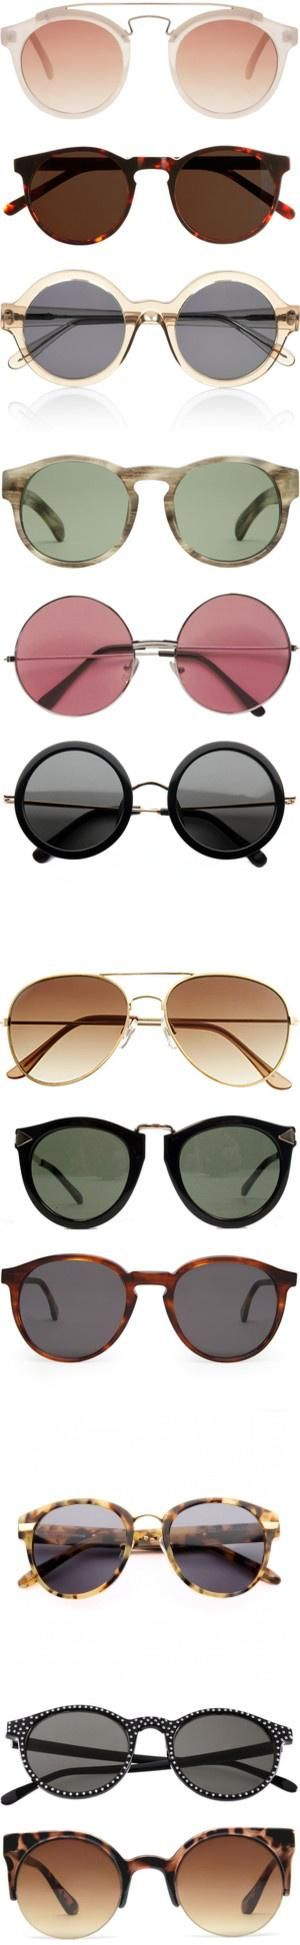 Having troubles finding the best pair of shades to fit your face check out this helpful tool: http://www.sunglasswarehouse.com/blog/sunglasses-for-face-shape/ …